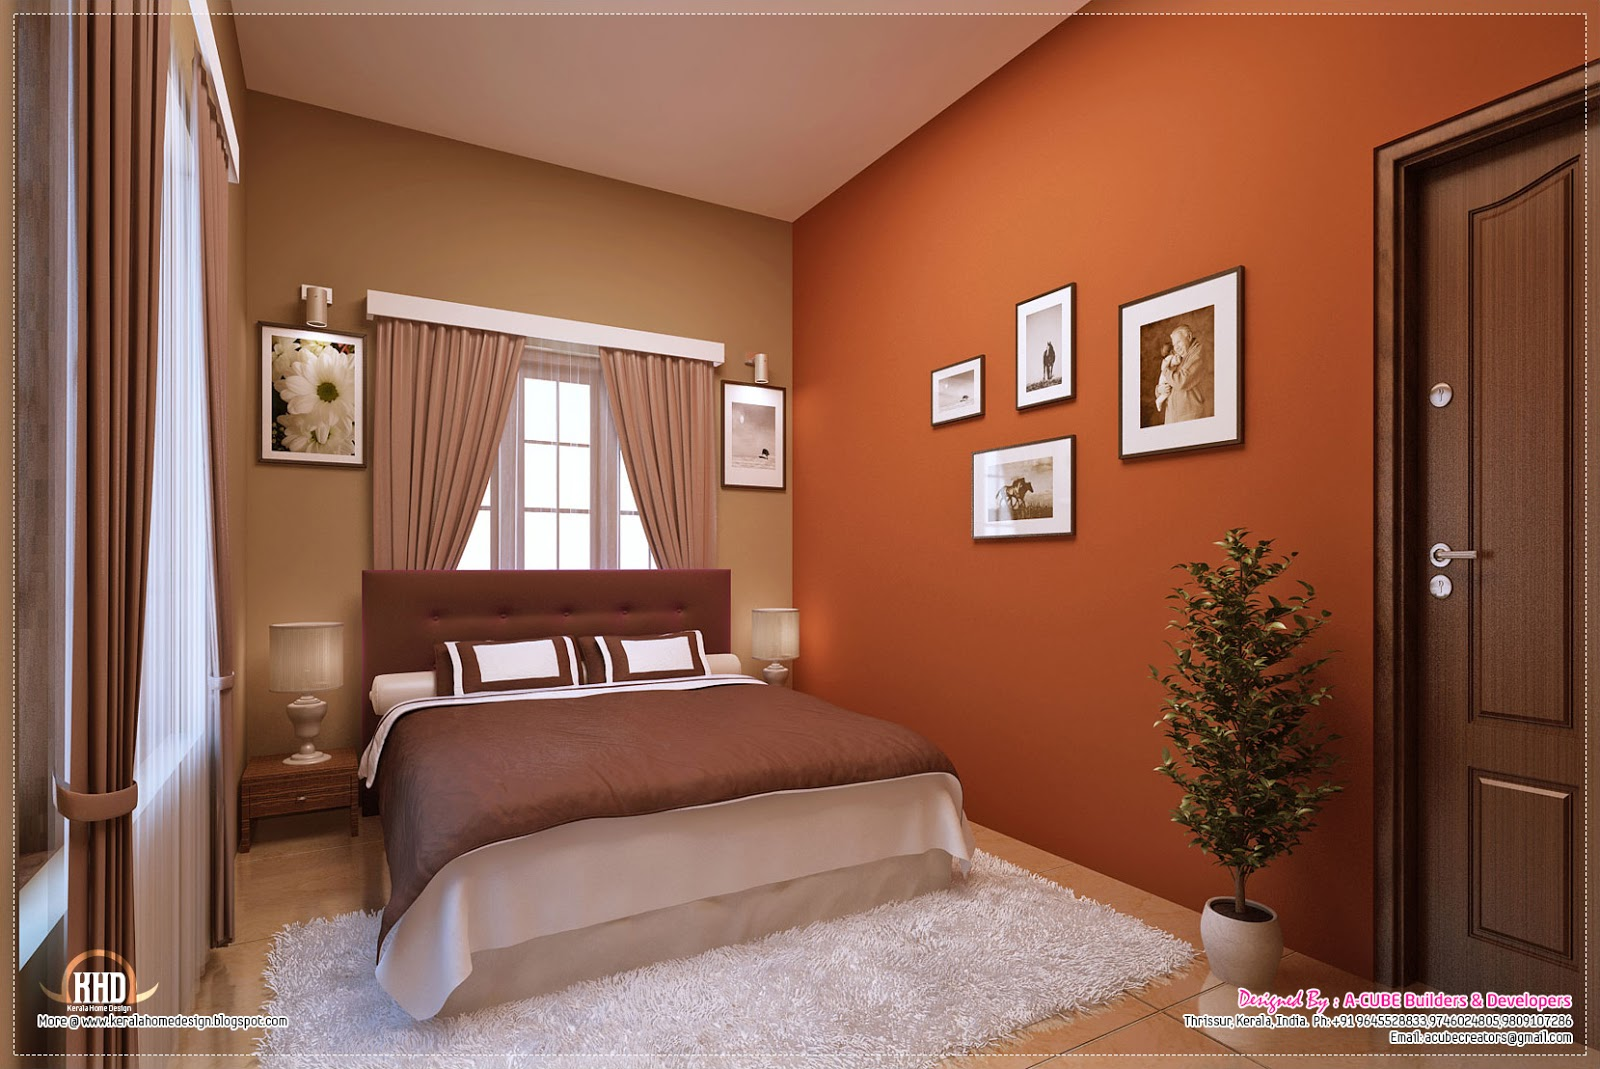 Awesome interior decoration ideas home kerala plans for Home inside decoration